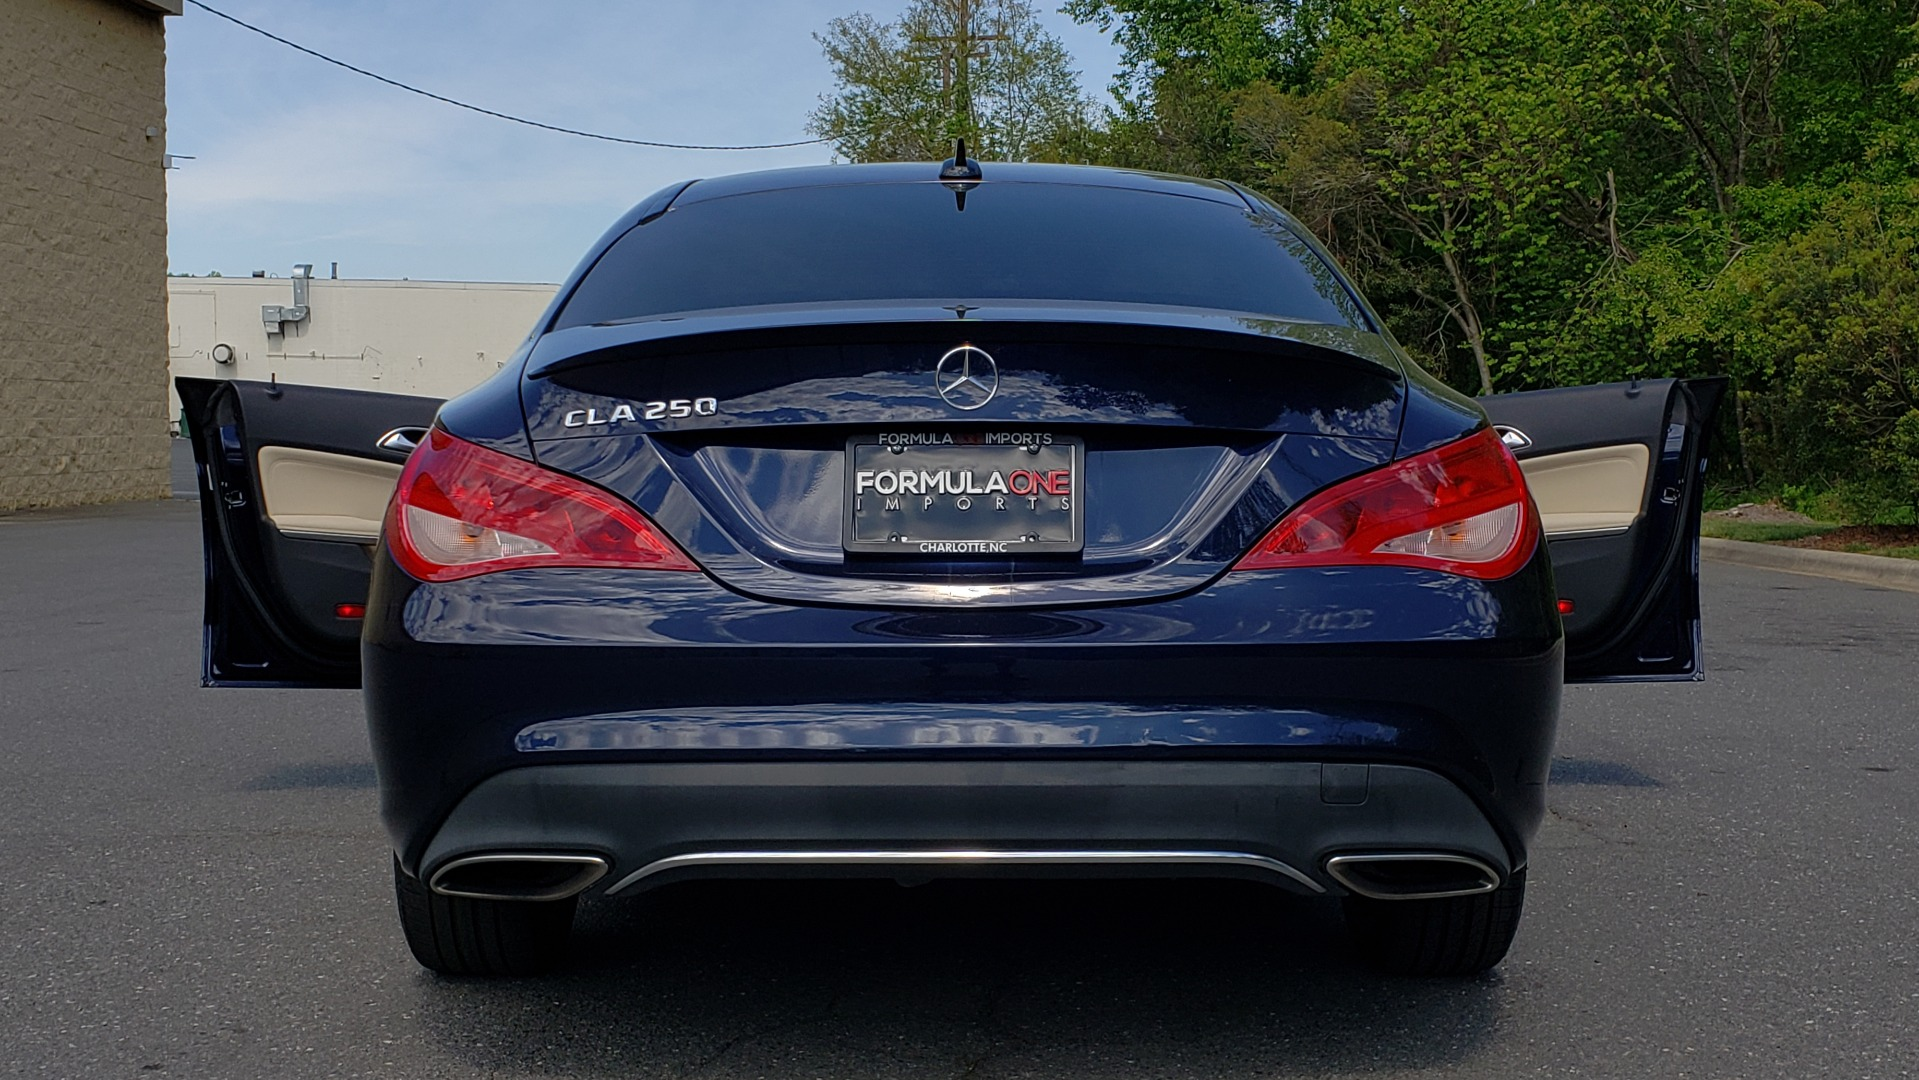 Used 2017 Mercedes-Benz CLA 250 PREMIUM / PANO-ROOF / HK SOUNDS / BSM / REARVIEW for sale Sold at Formula Imports in Charlotte NC 28227 23